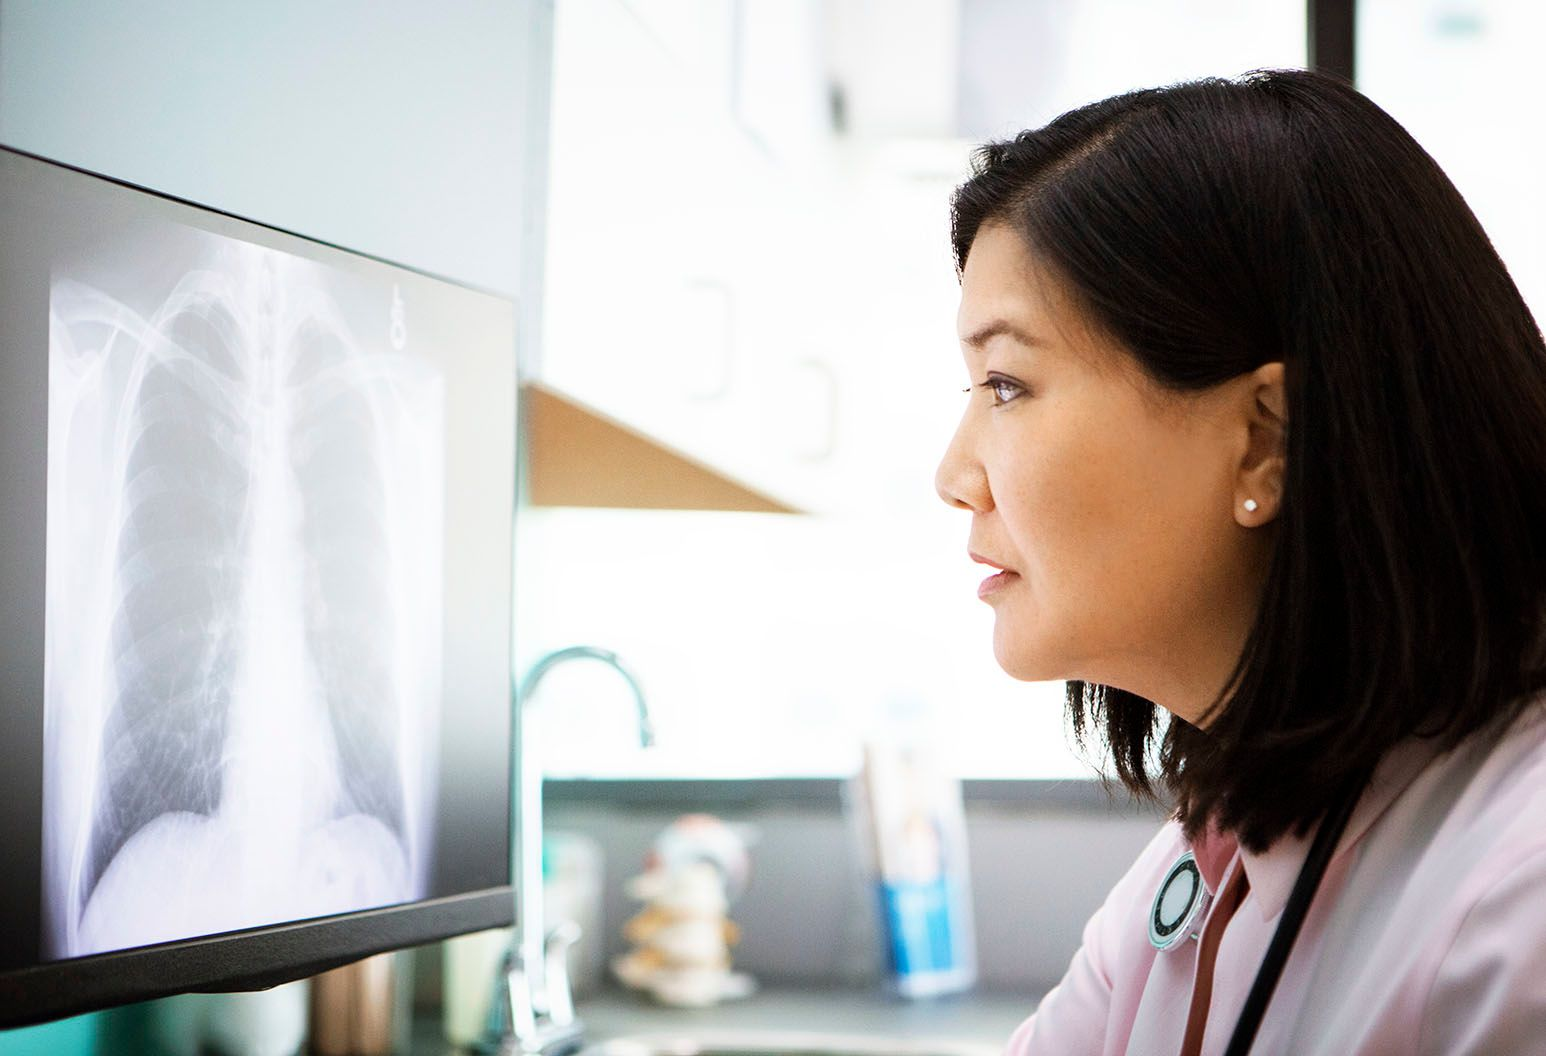 A female asian clinician with shoulder-length black hair looks at an x-ray of a spine on a screen.